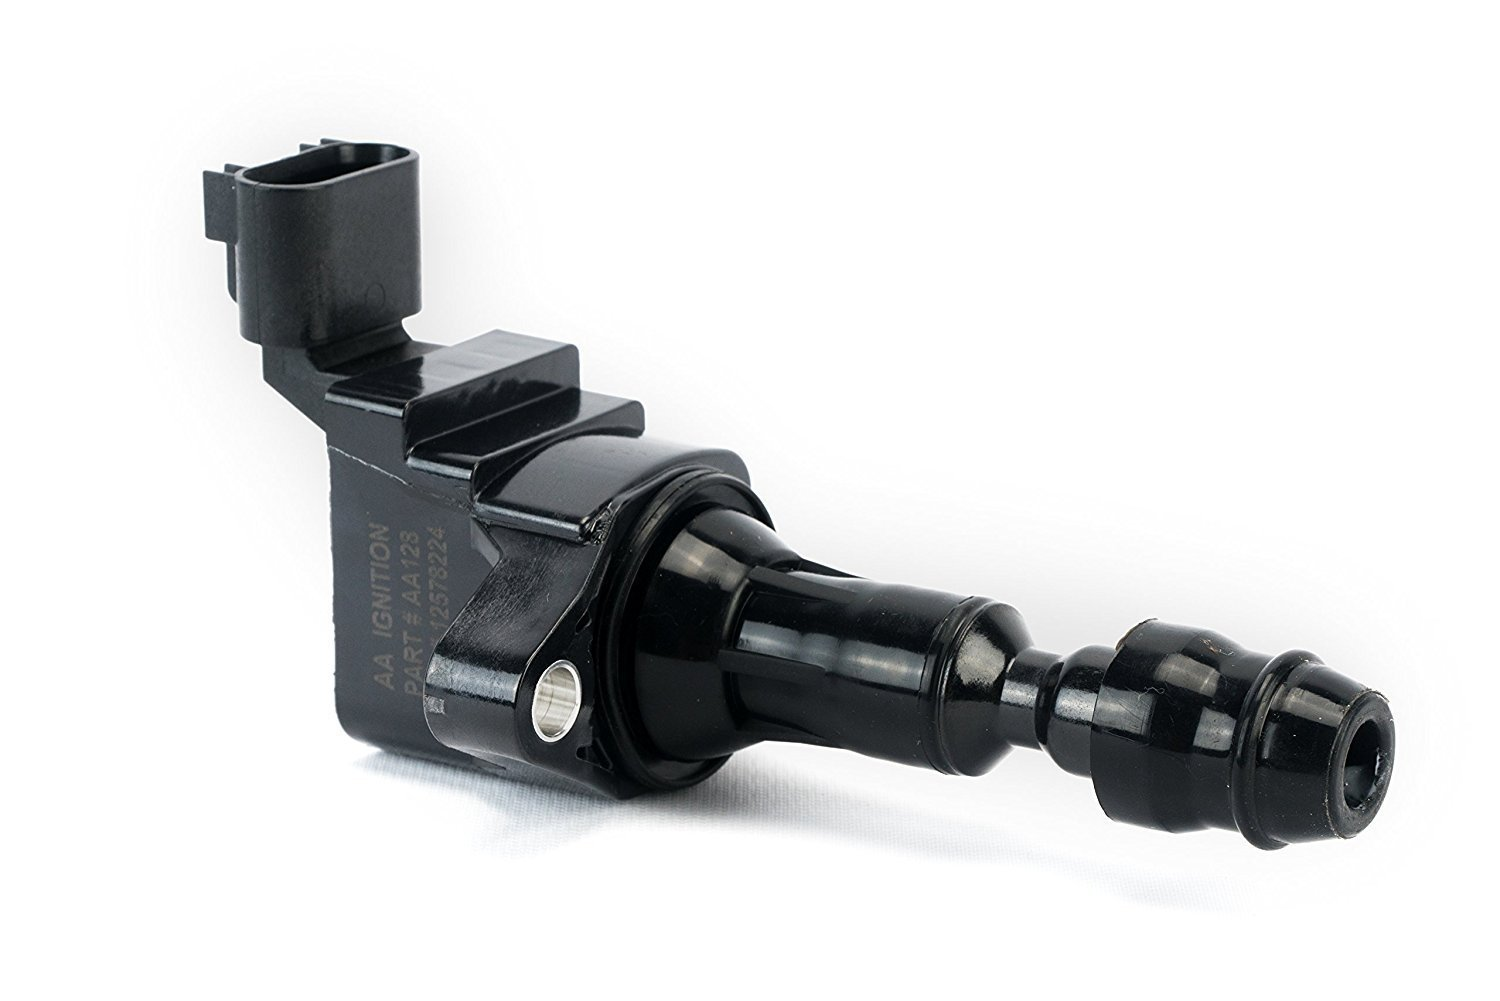 Spectra Premium Ignition Coil fits Chevy Chevelle 1964-1973 24MZGX